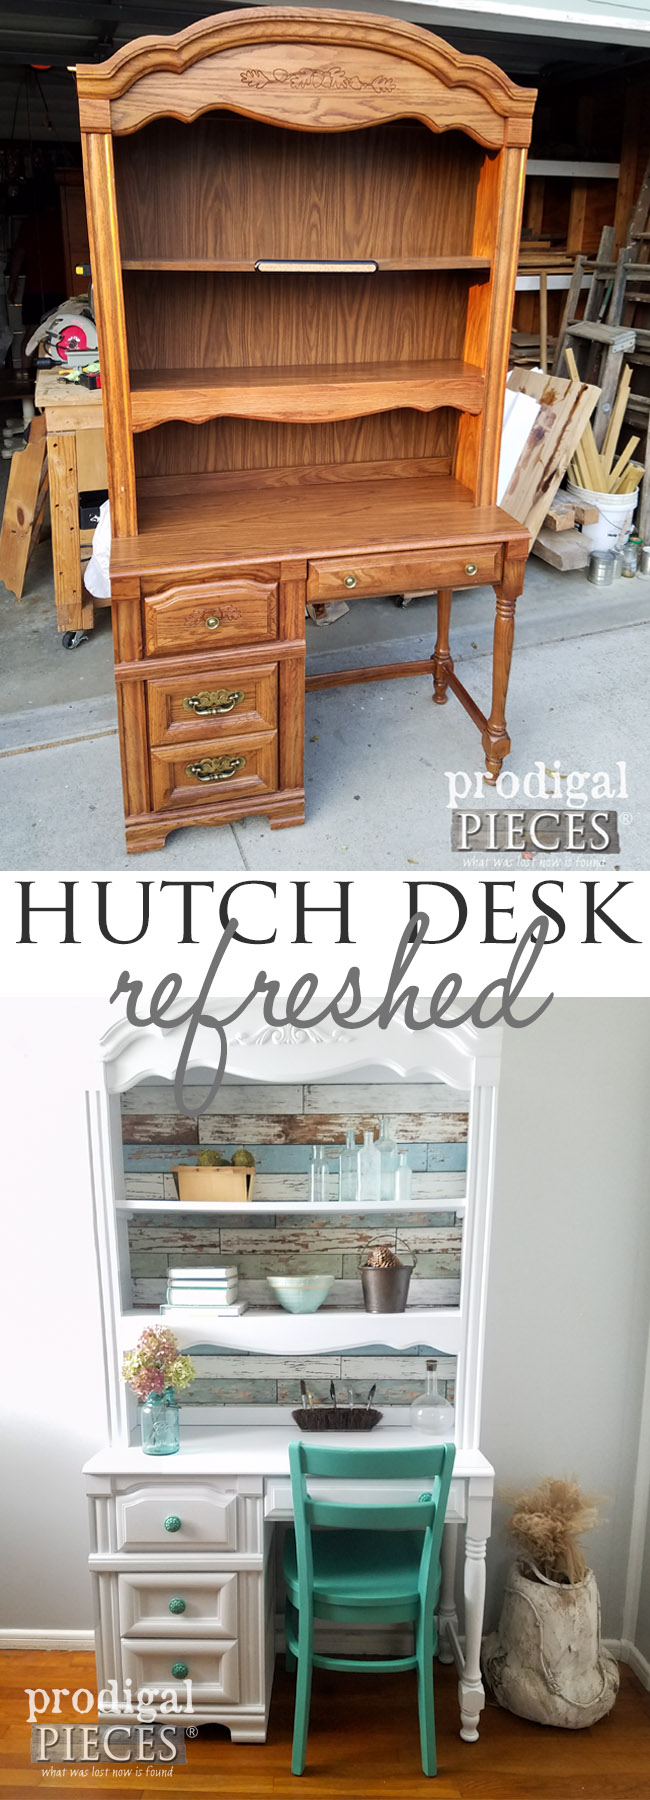 Oh my! This worn out looking Broyhill hutch desk has never looked so good. See how easy it can be to updated a dated piece with the help of Larissa at Prodigal Pieces | prodigalpieces.com